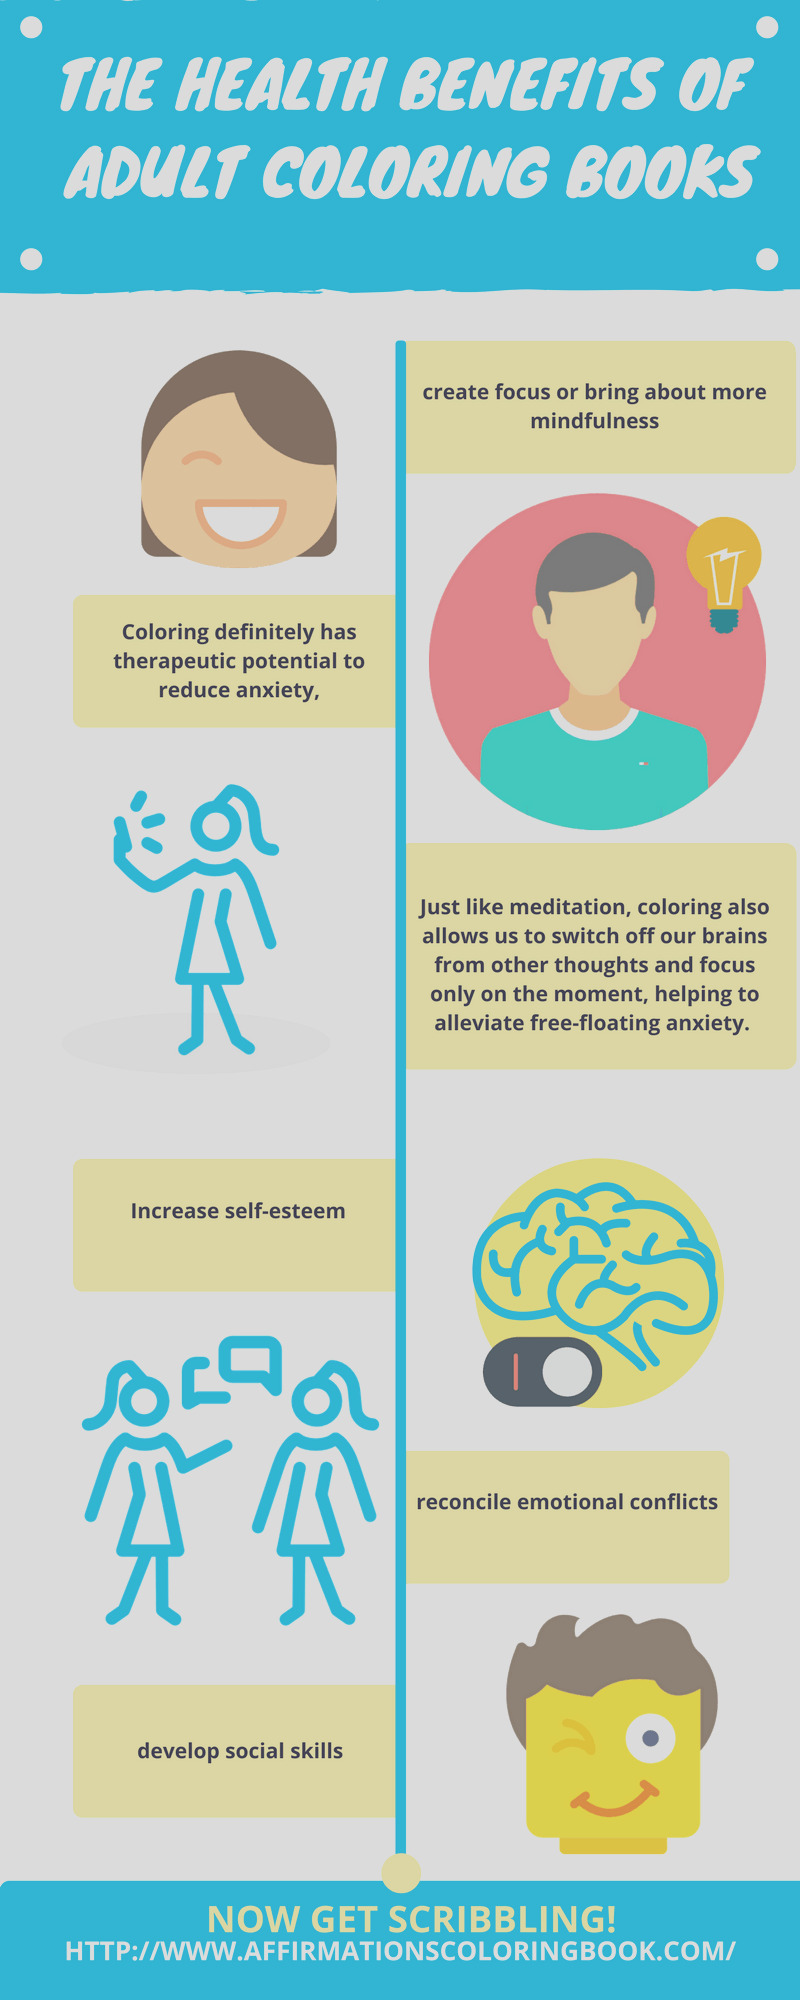 health benefits adult coloring books infographic